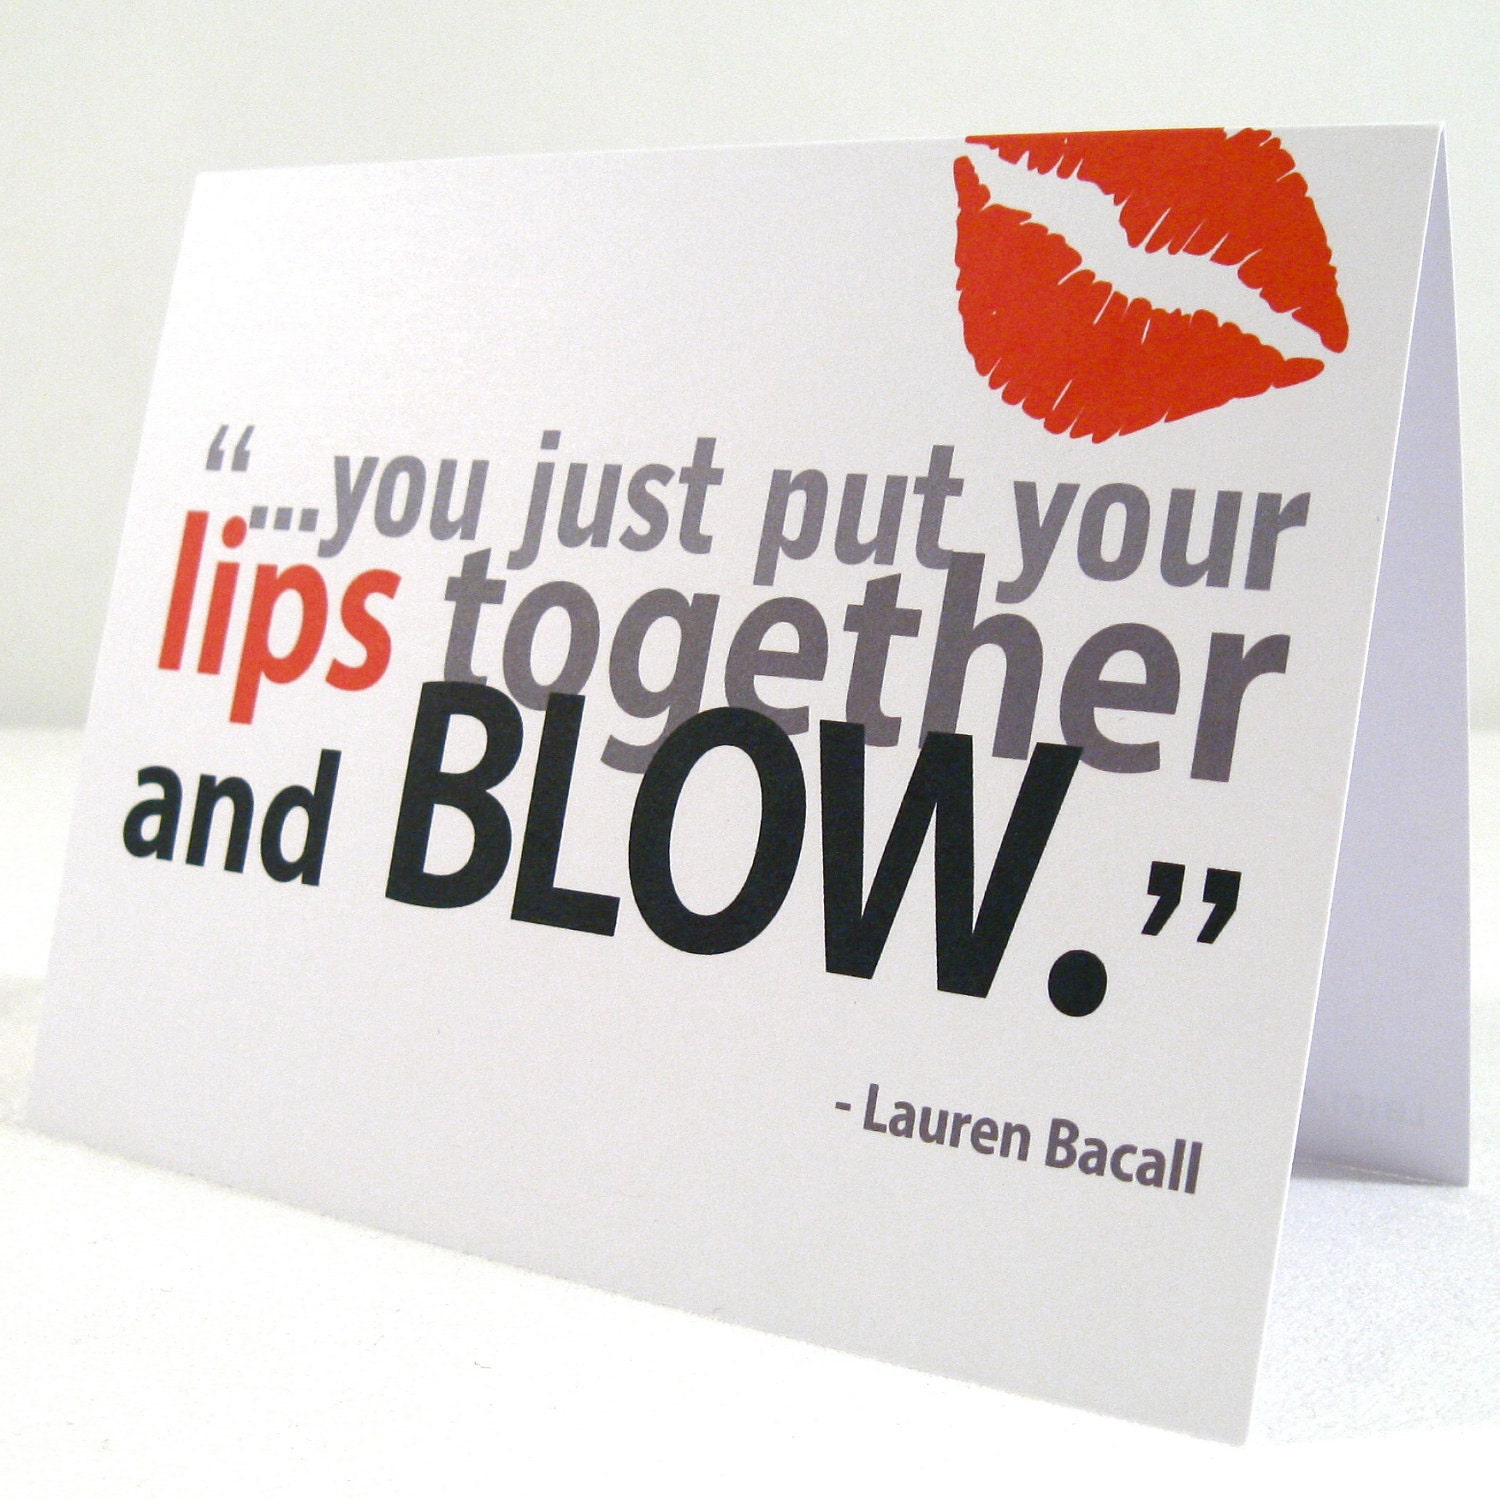 just put your lips together and blow: